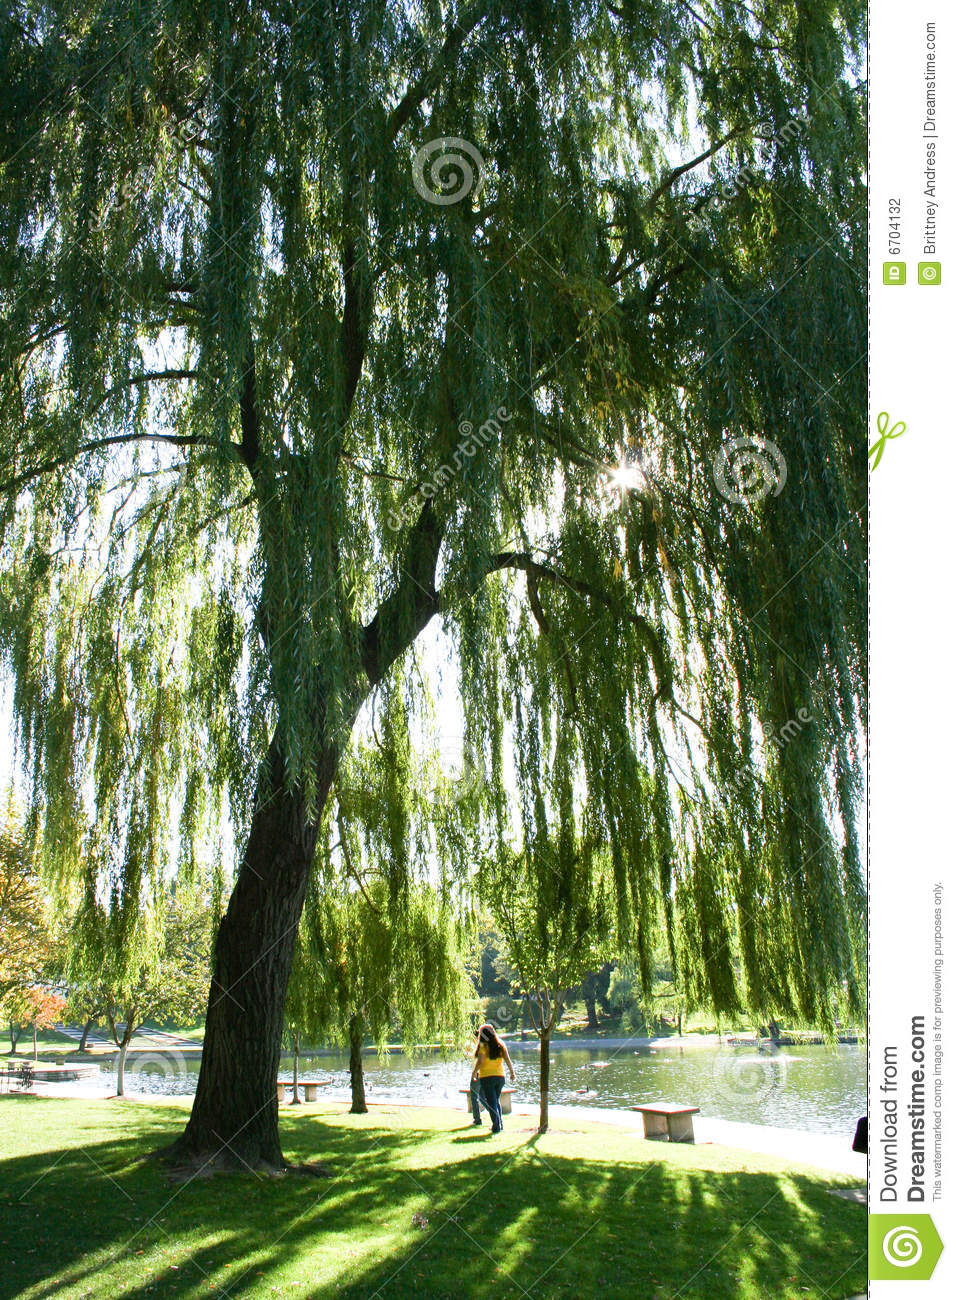 Under a Willow Tree